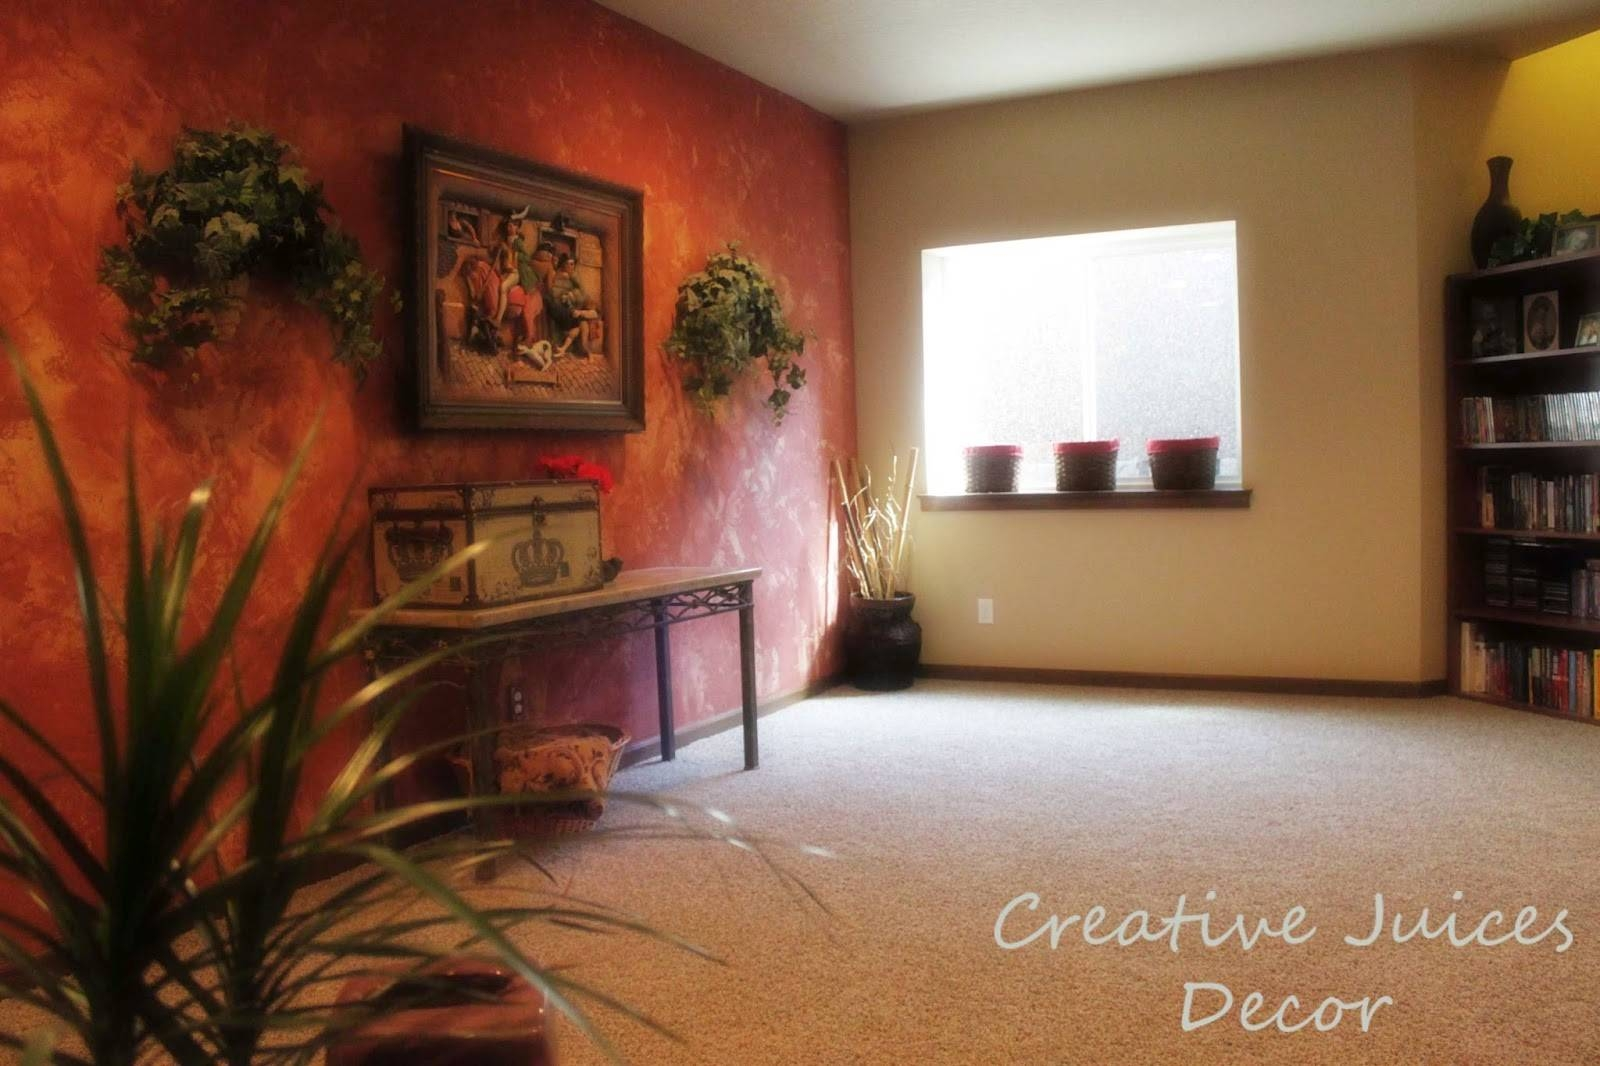 Creative Juices Decor: Home Decor In Warm Autumn Colors! In Best And Newest Autumn  Inspired Wall Art (View 22 of 25)